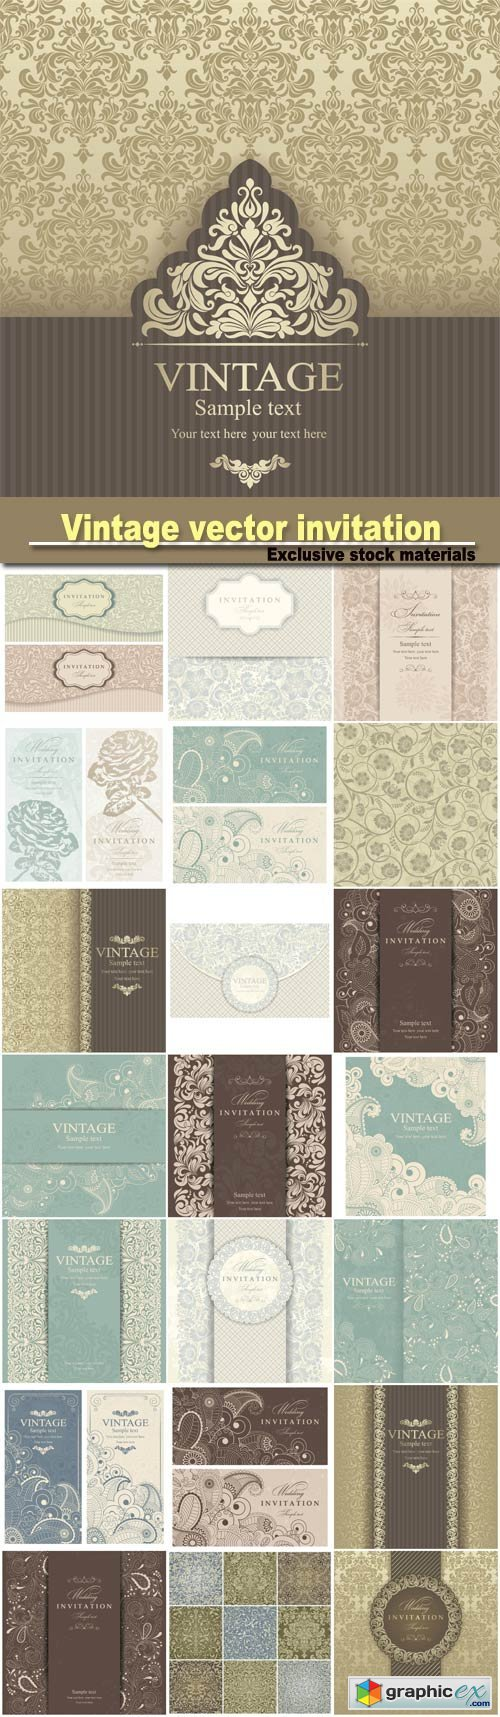 Vintage vector invitation with patterns